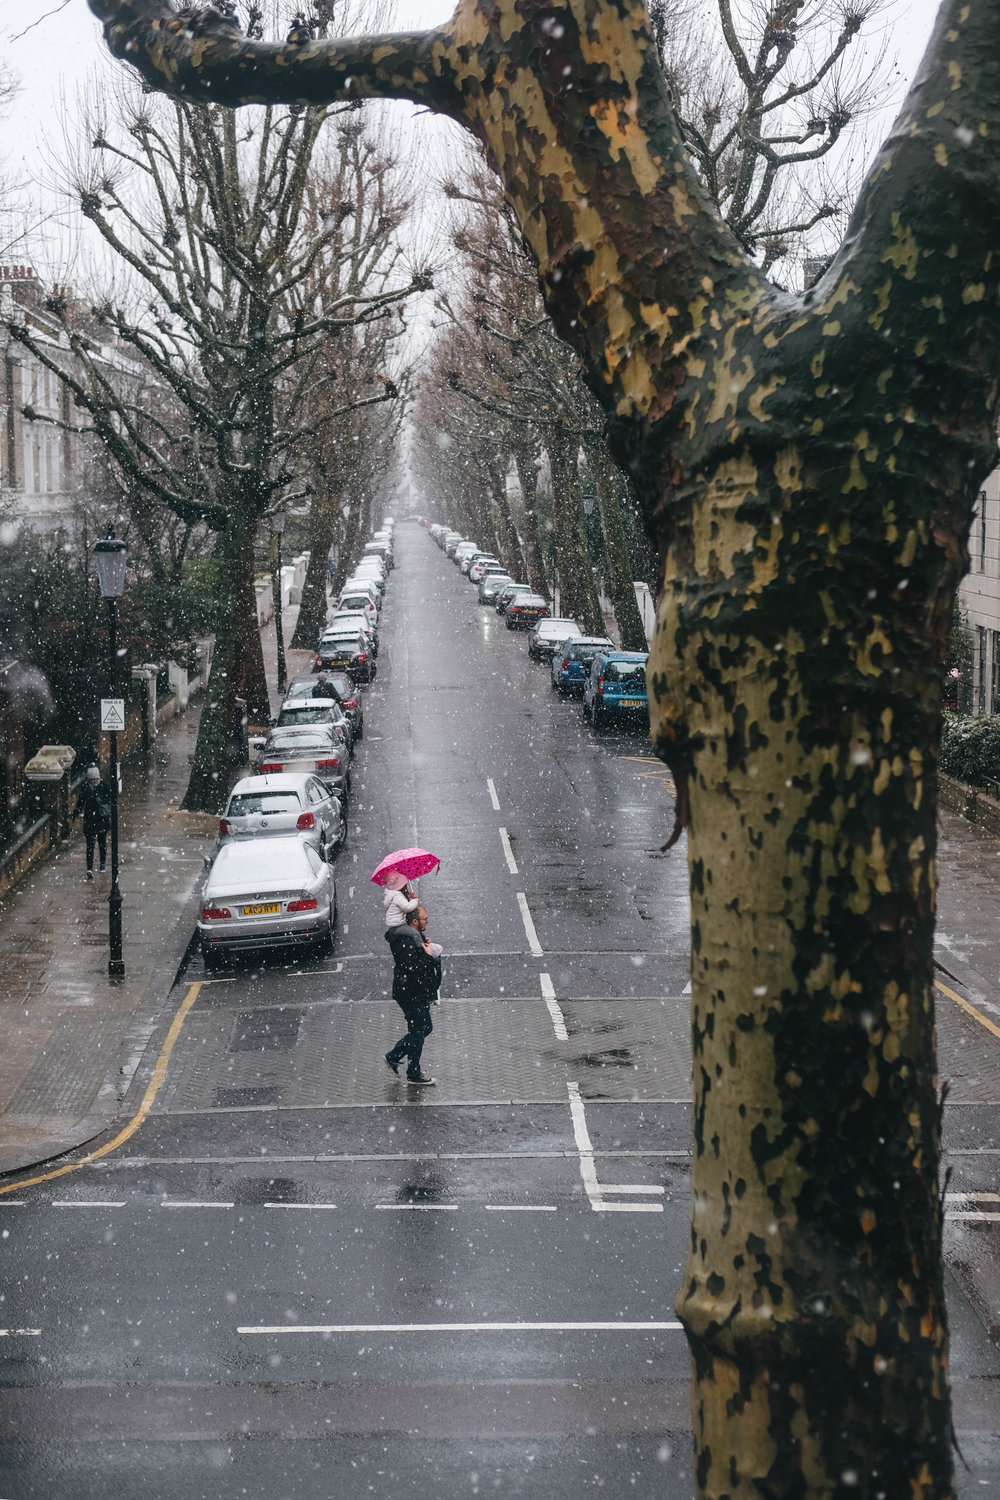 "<p style=""font-family:brandon-grotesque;font-weight:500; font-size:11px; text-center:left; color:light grey;letter-spacing: 1px"">DECEMBER 10, 2017 • SNOW DAY! • 📍 London, UK</p>"